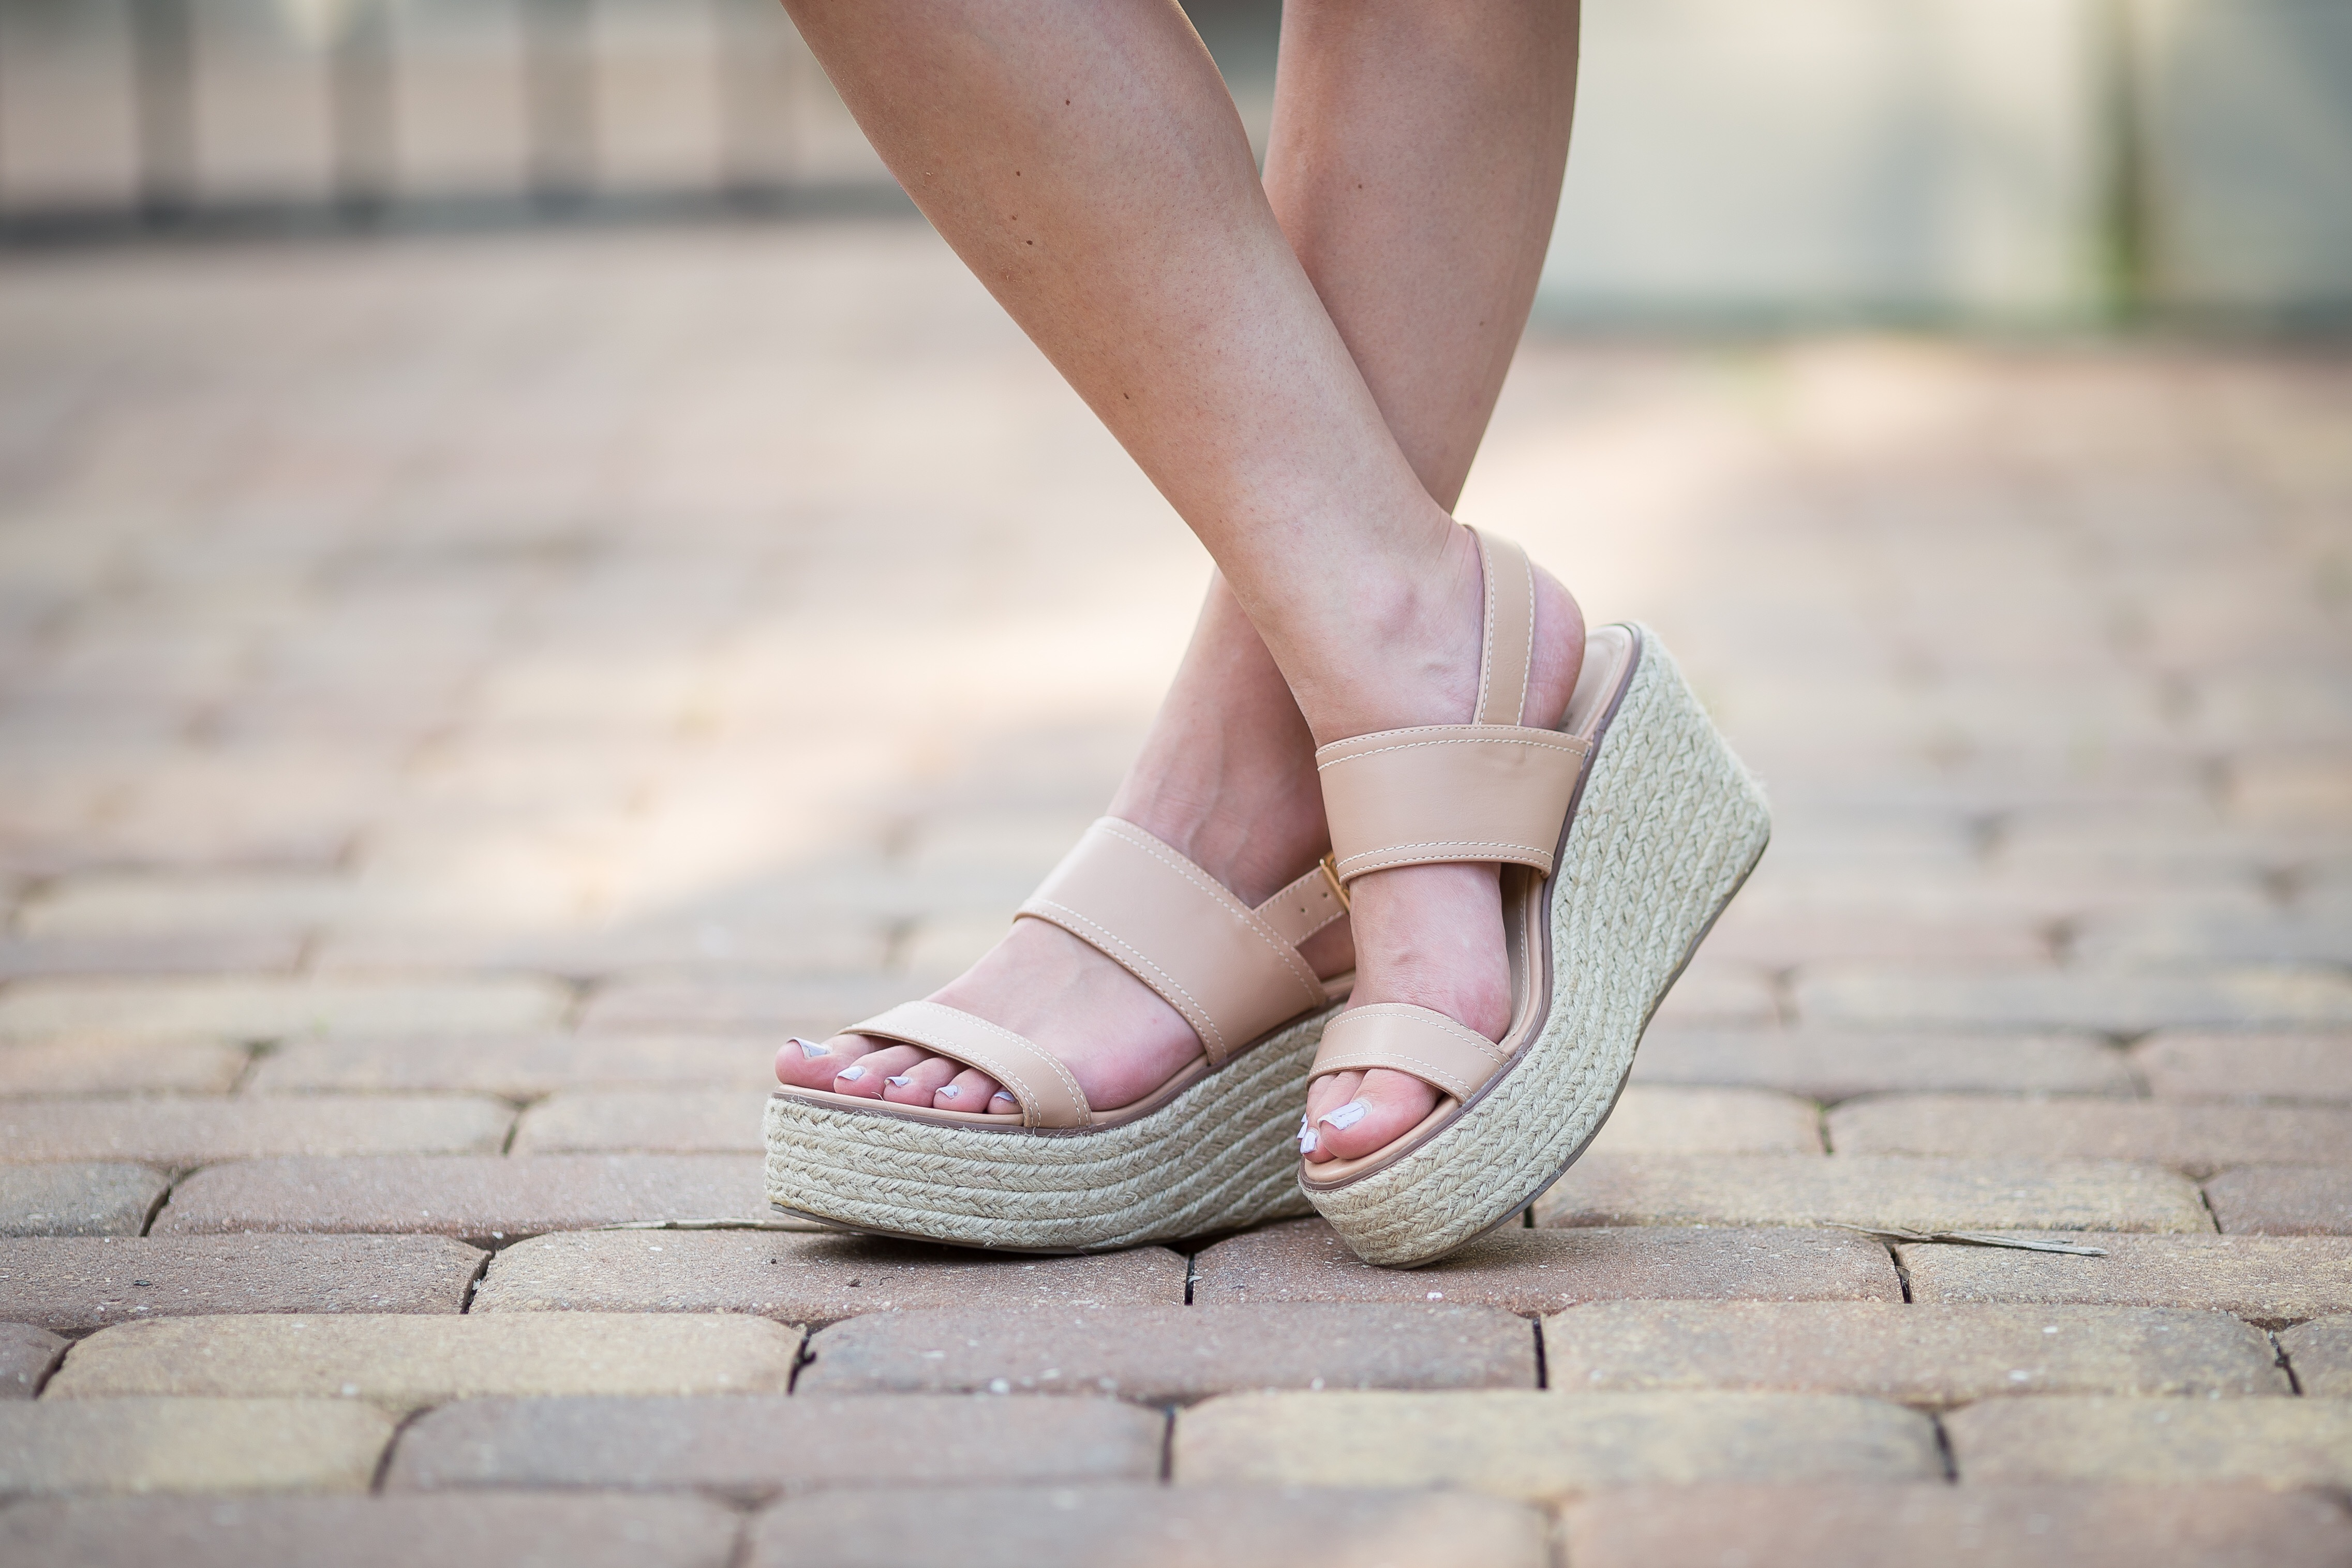 winter most to comforter heels along supple with tips health calm style versus alexie supreme ga pretty uk comfortable wedges